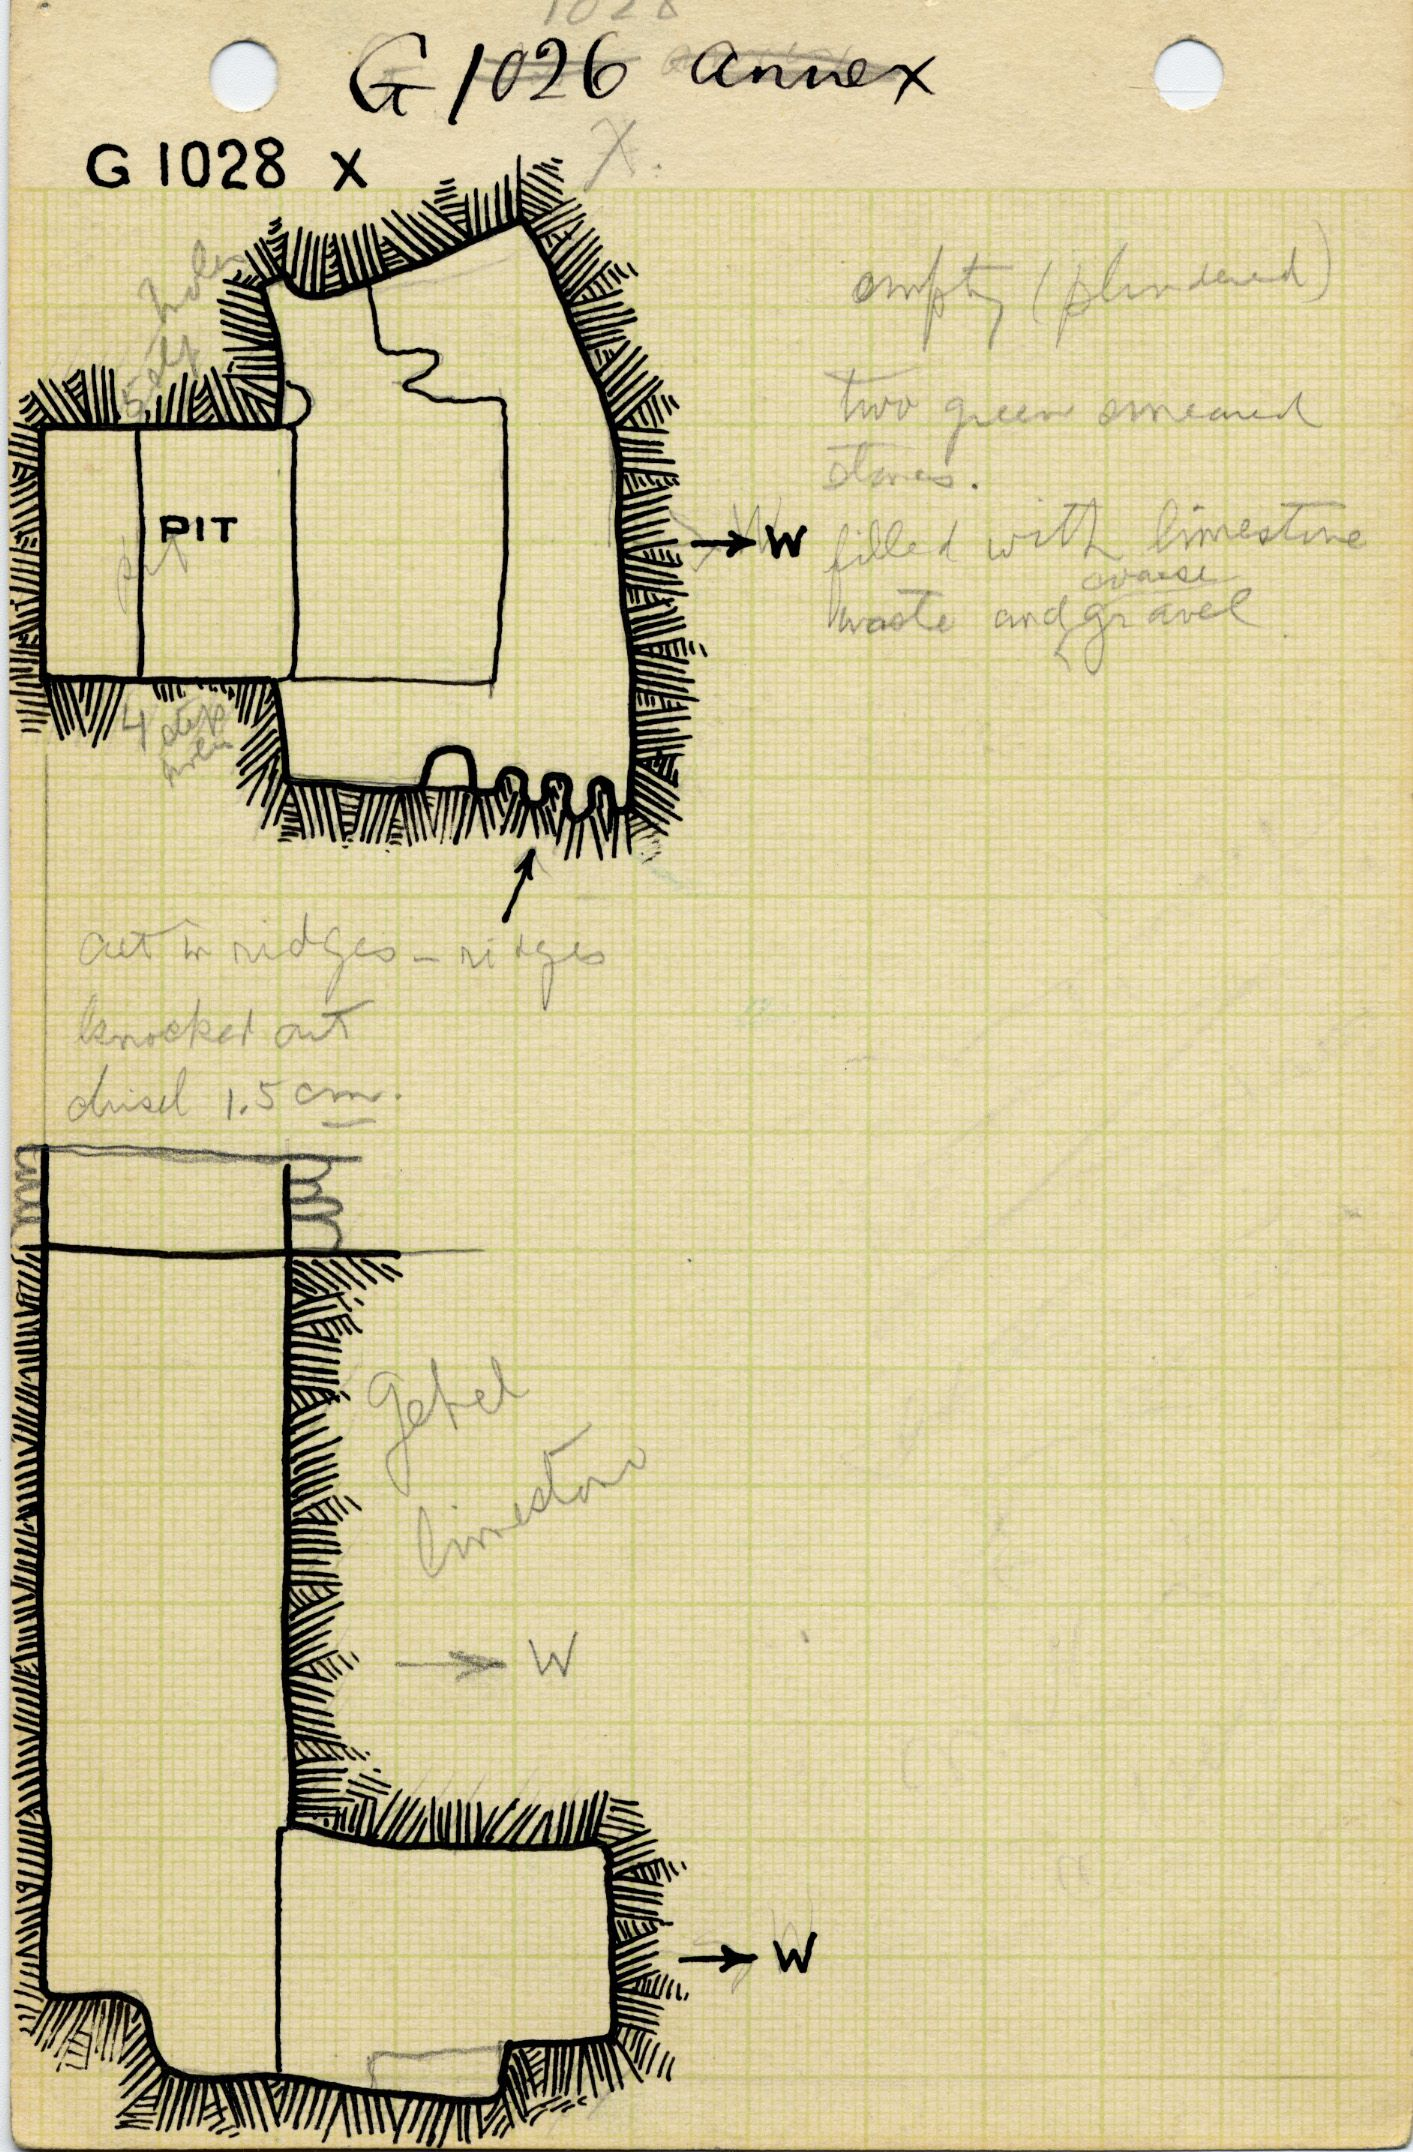 Maps and plans: G 1028, Shaft X